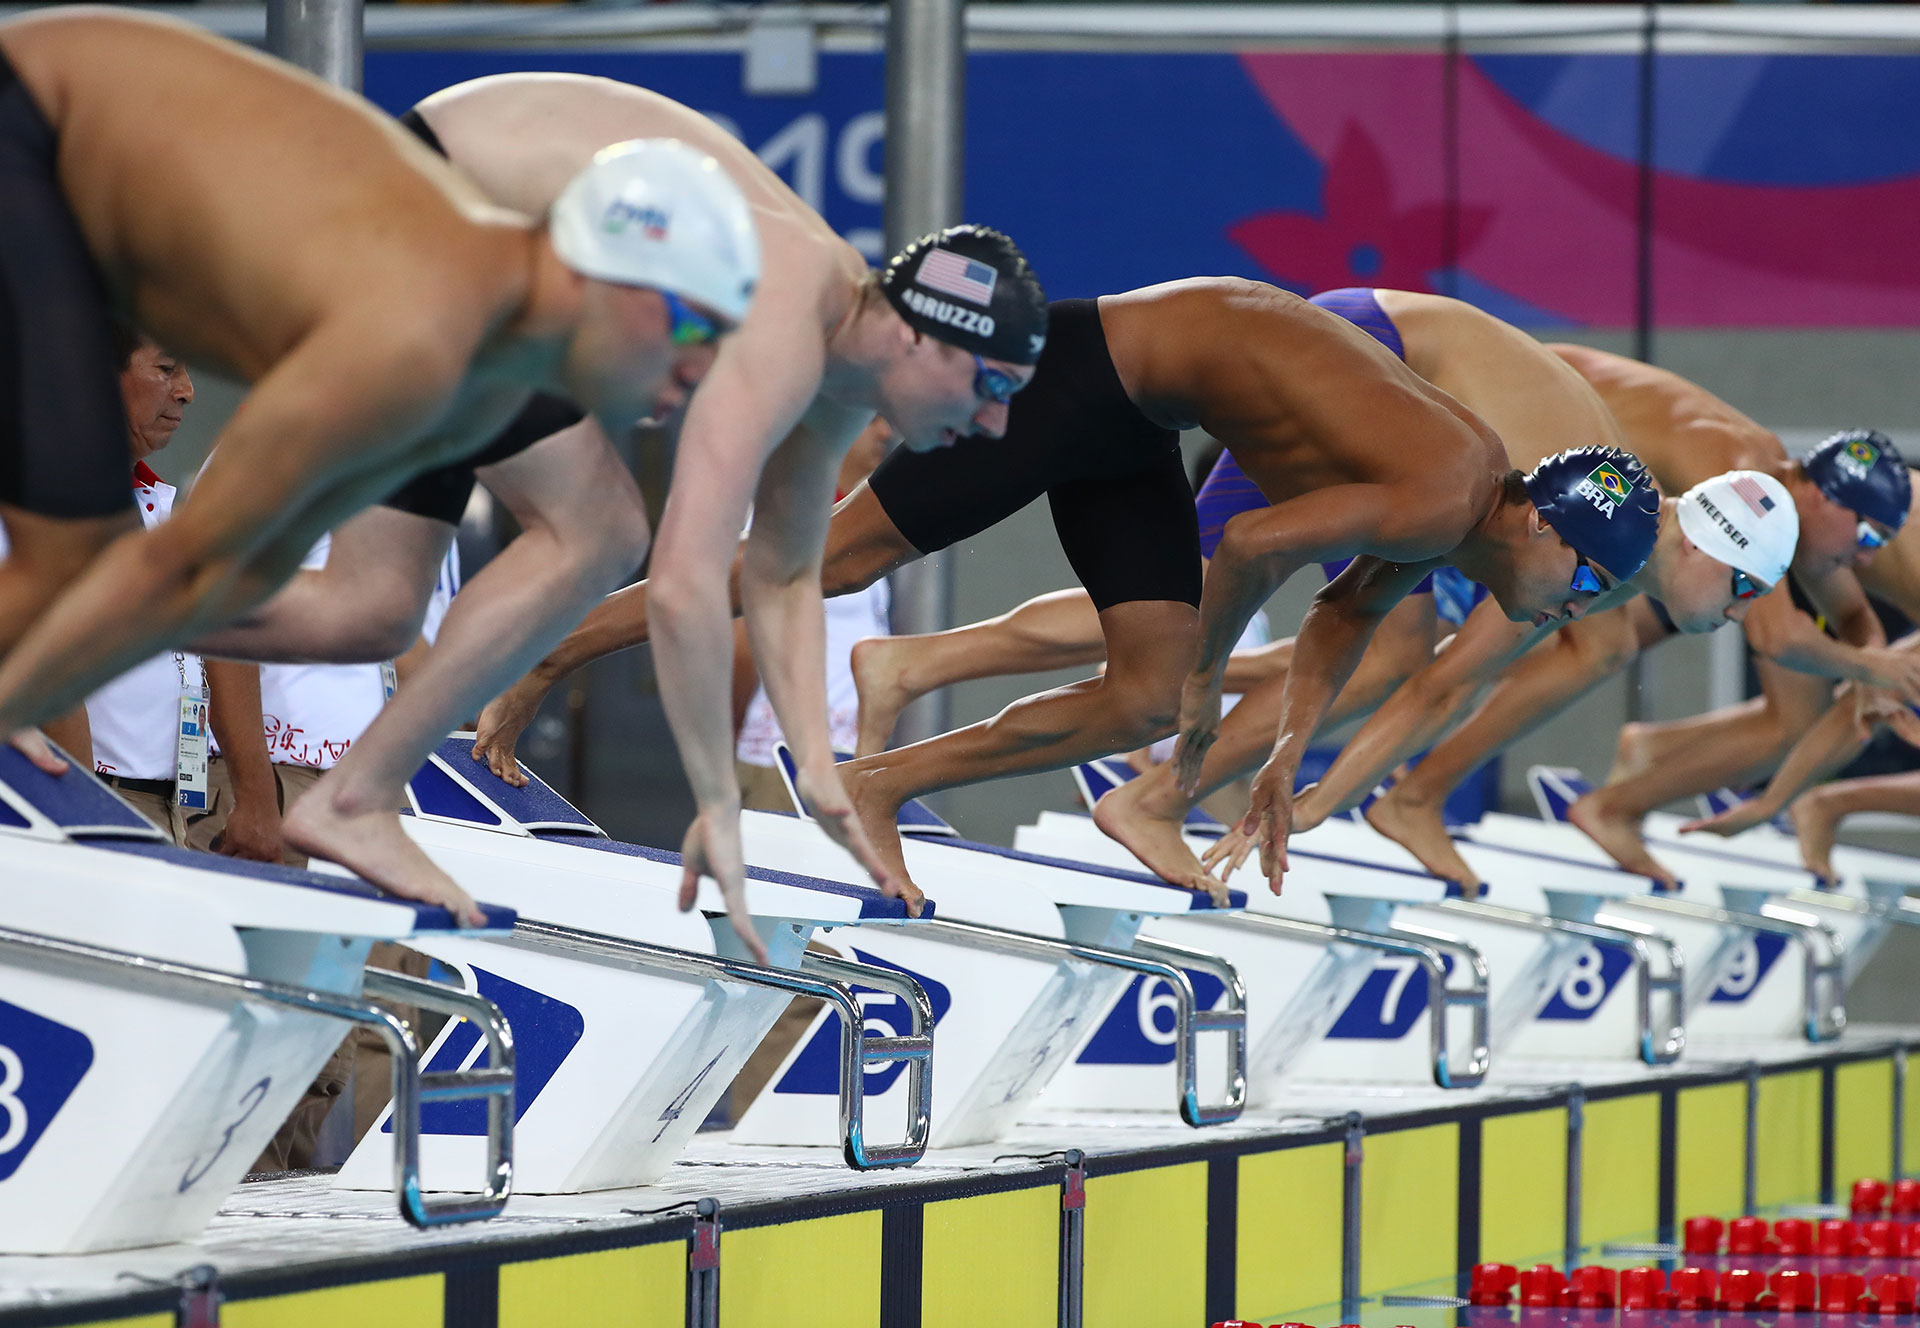 Swimming  XVIII Pan American Games - Lima 2019 - Men's 200m Individual Medley - Aquatic Center, Lima, Peru - August 10, 2019. William Licon of the U.S., between José Angel Martinez Gomez, and Brazil's Caio Rodrigues Pumputis at the start of the race. REUTERS/Pilar Olivares